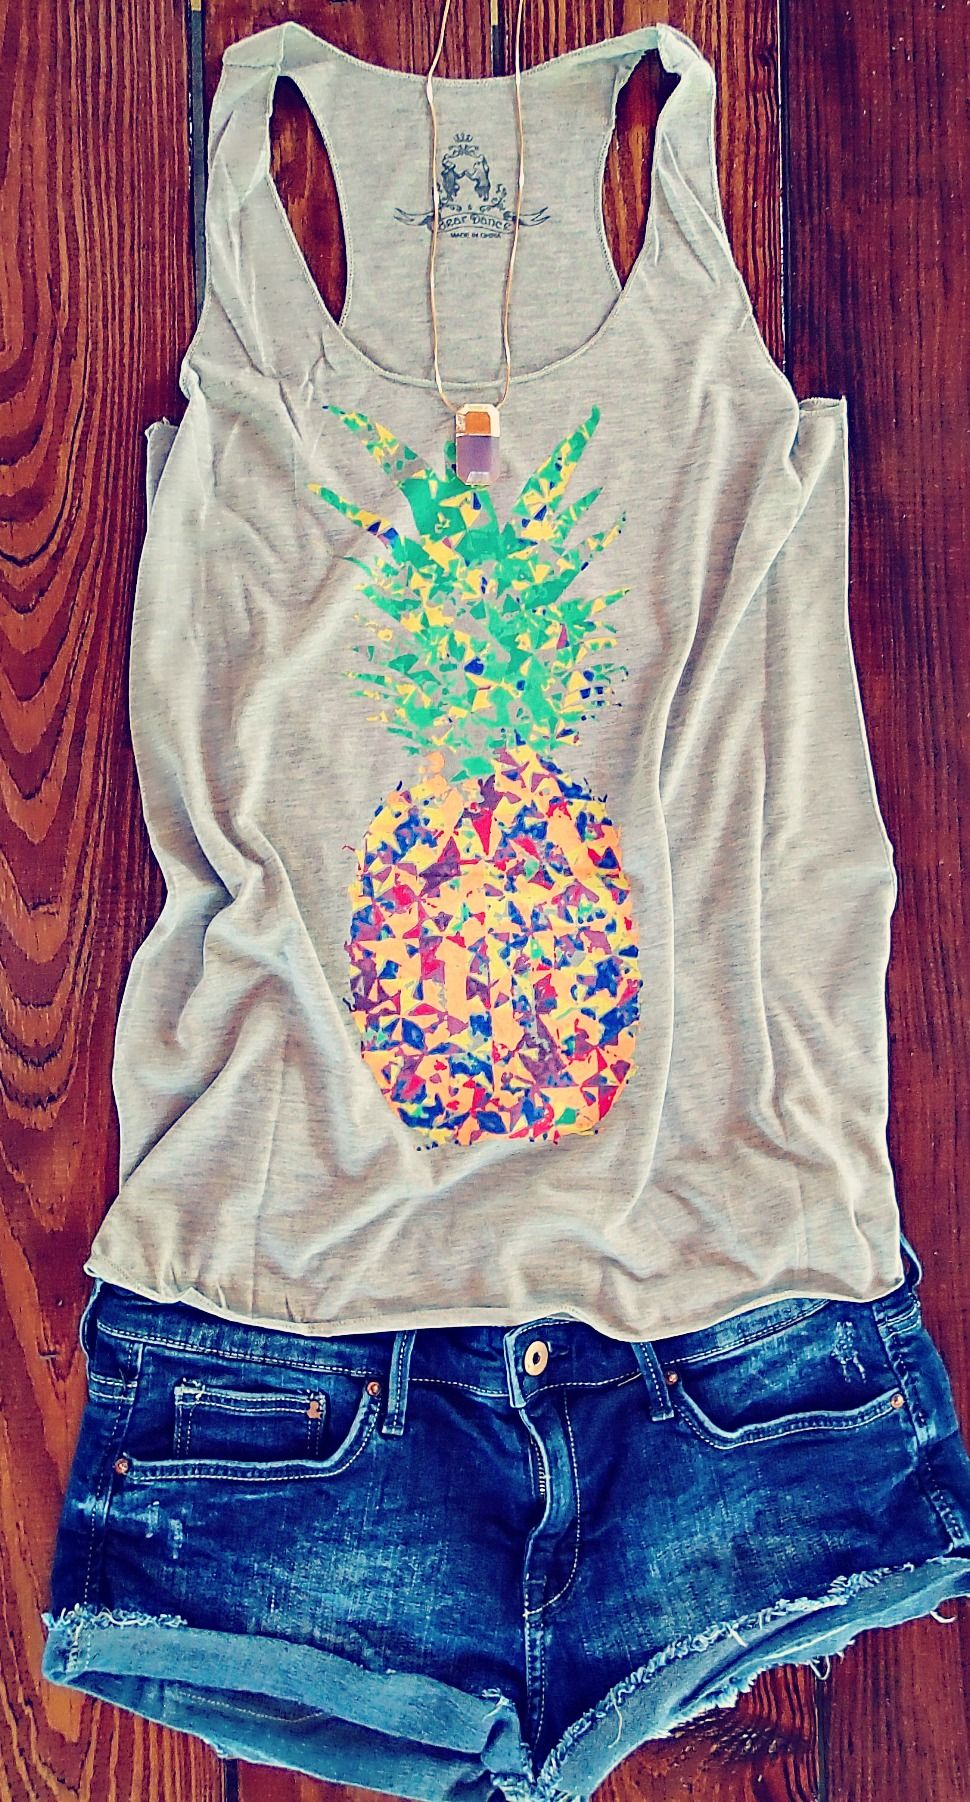 Cheap Sale Best Prices Printed Racerback Top - Summer Roses Too by VIDA VIDA Outlet Official Site Clearance Visit wQxDTzPlf